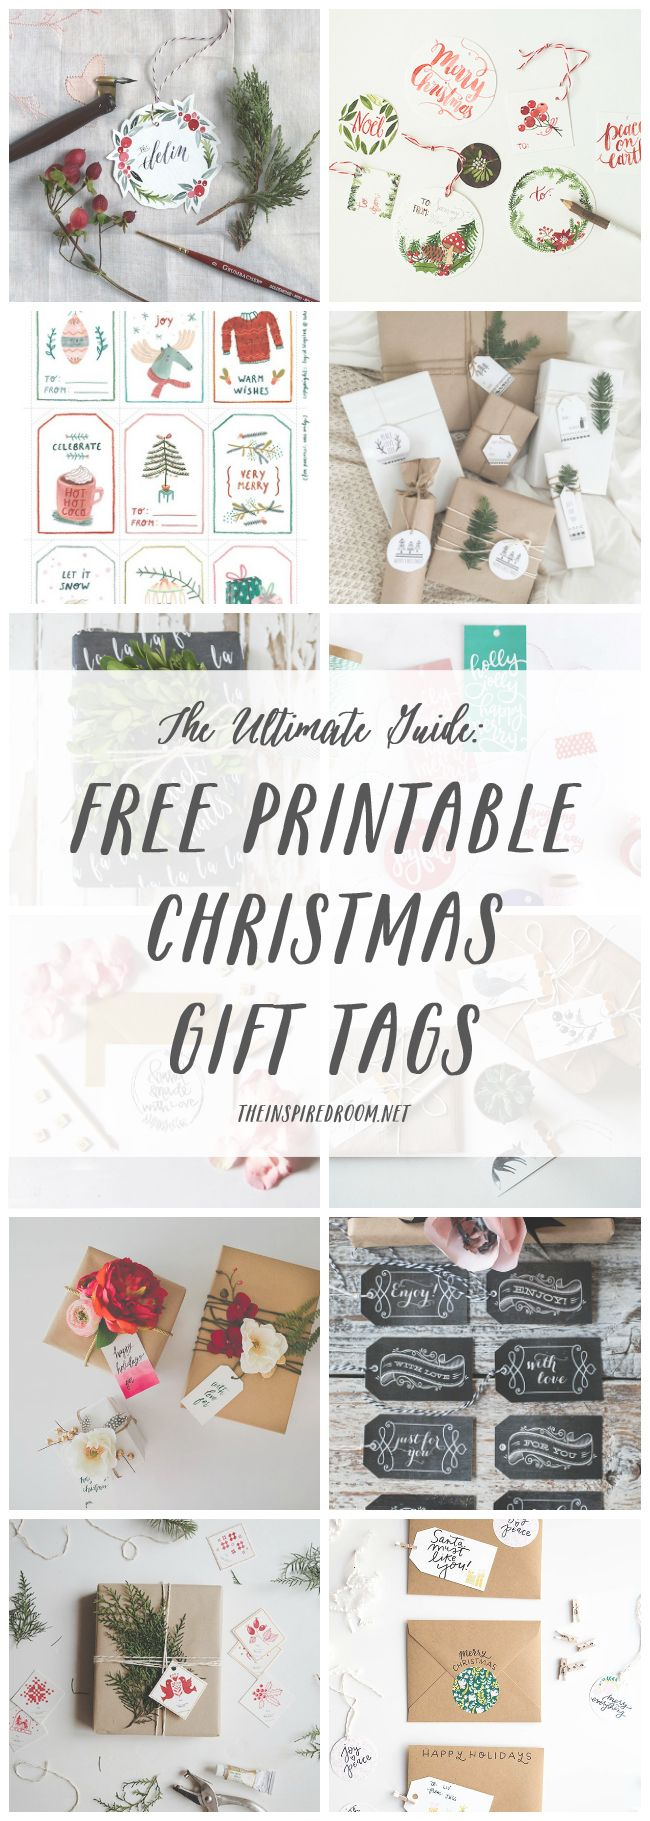 128 best free printables images on pinterest free printables the ultimate guide free printable christmas gift tags solutioingenieria